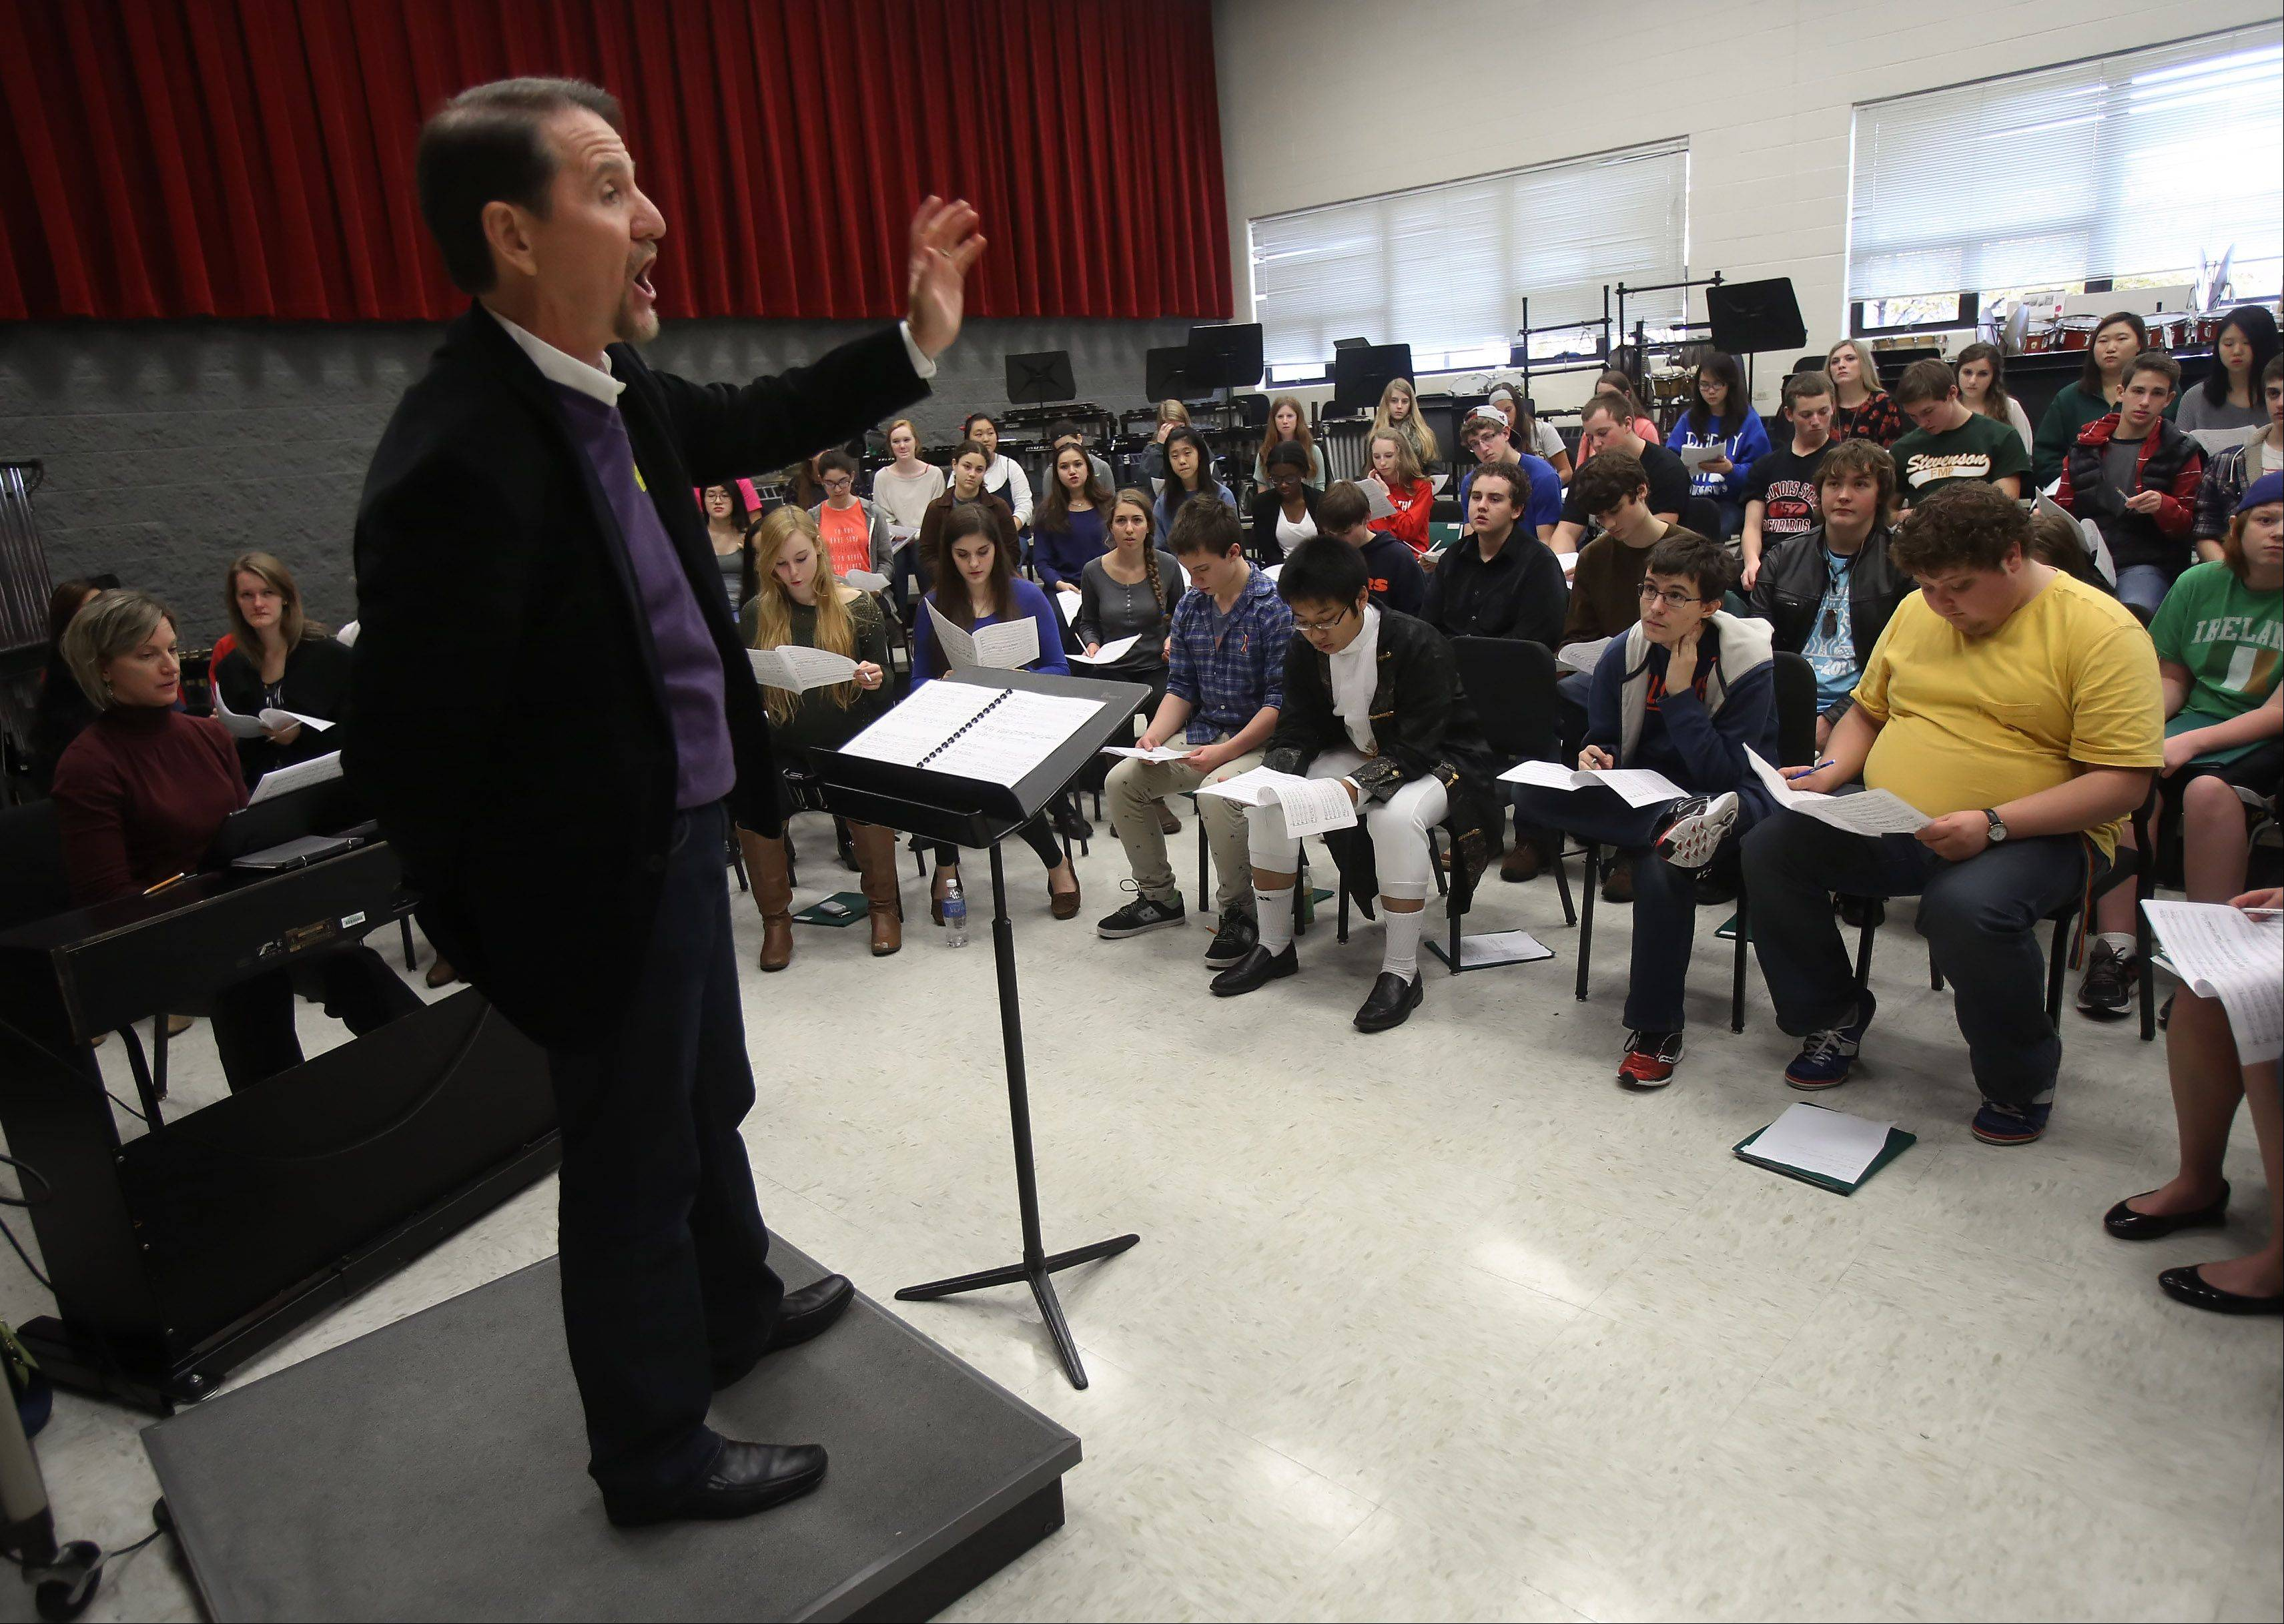 The band room in Stevenson High School�s west building could be renovated as part of a $9.7 million project being considered for summer 2014. Here, Emmy Award-winning Chicago composer Gary Fry works with students during a recent visit.